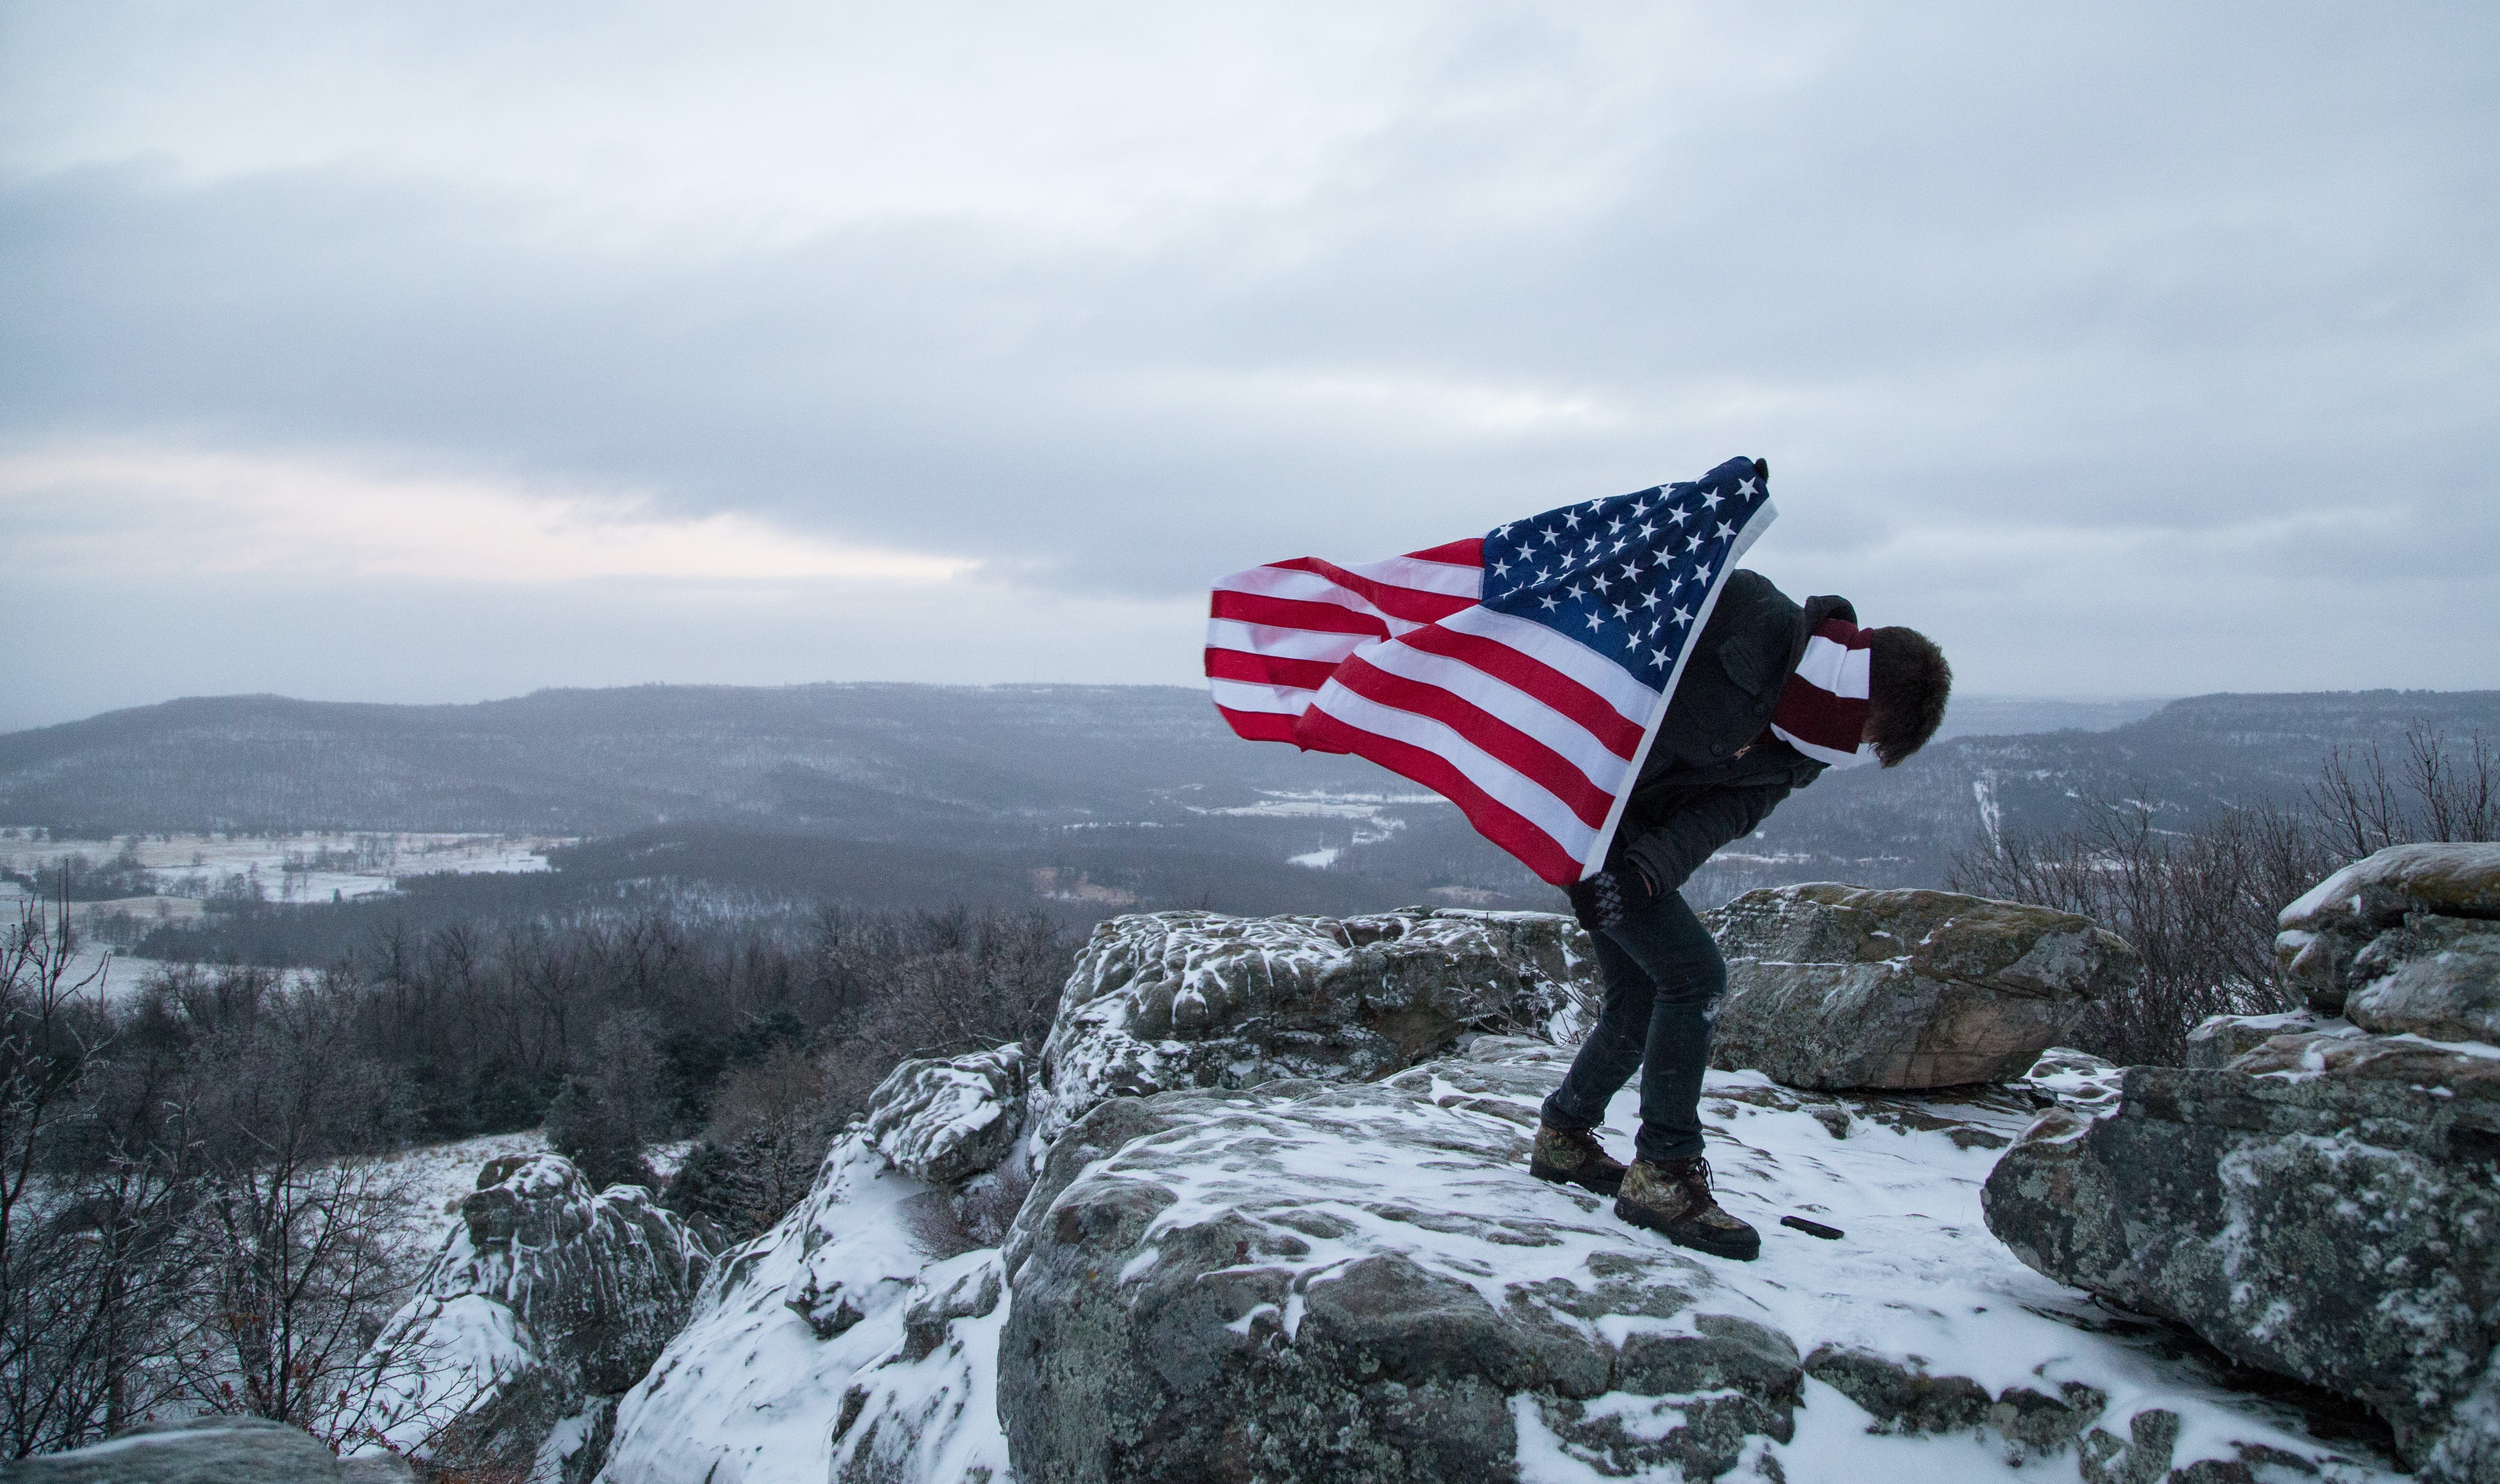 A climber holds the American flag while standing on the peak of a snowy mountain